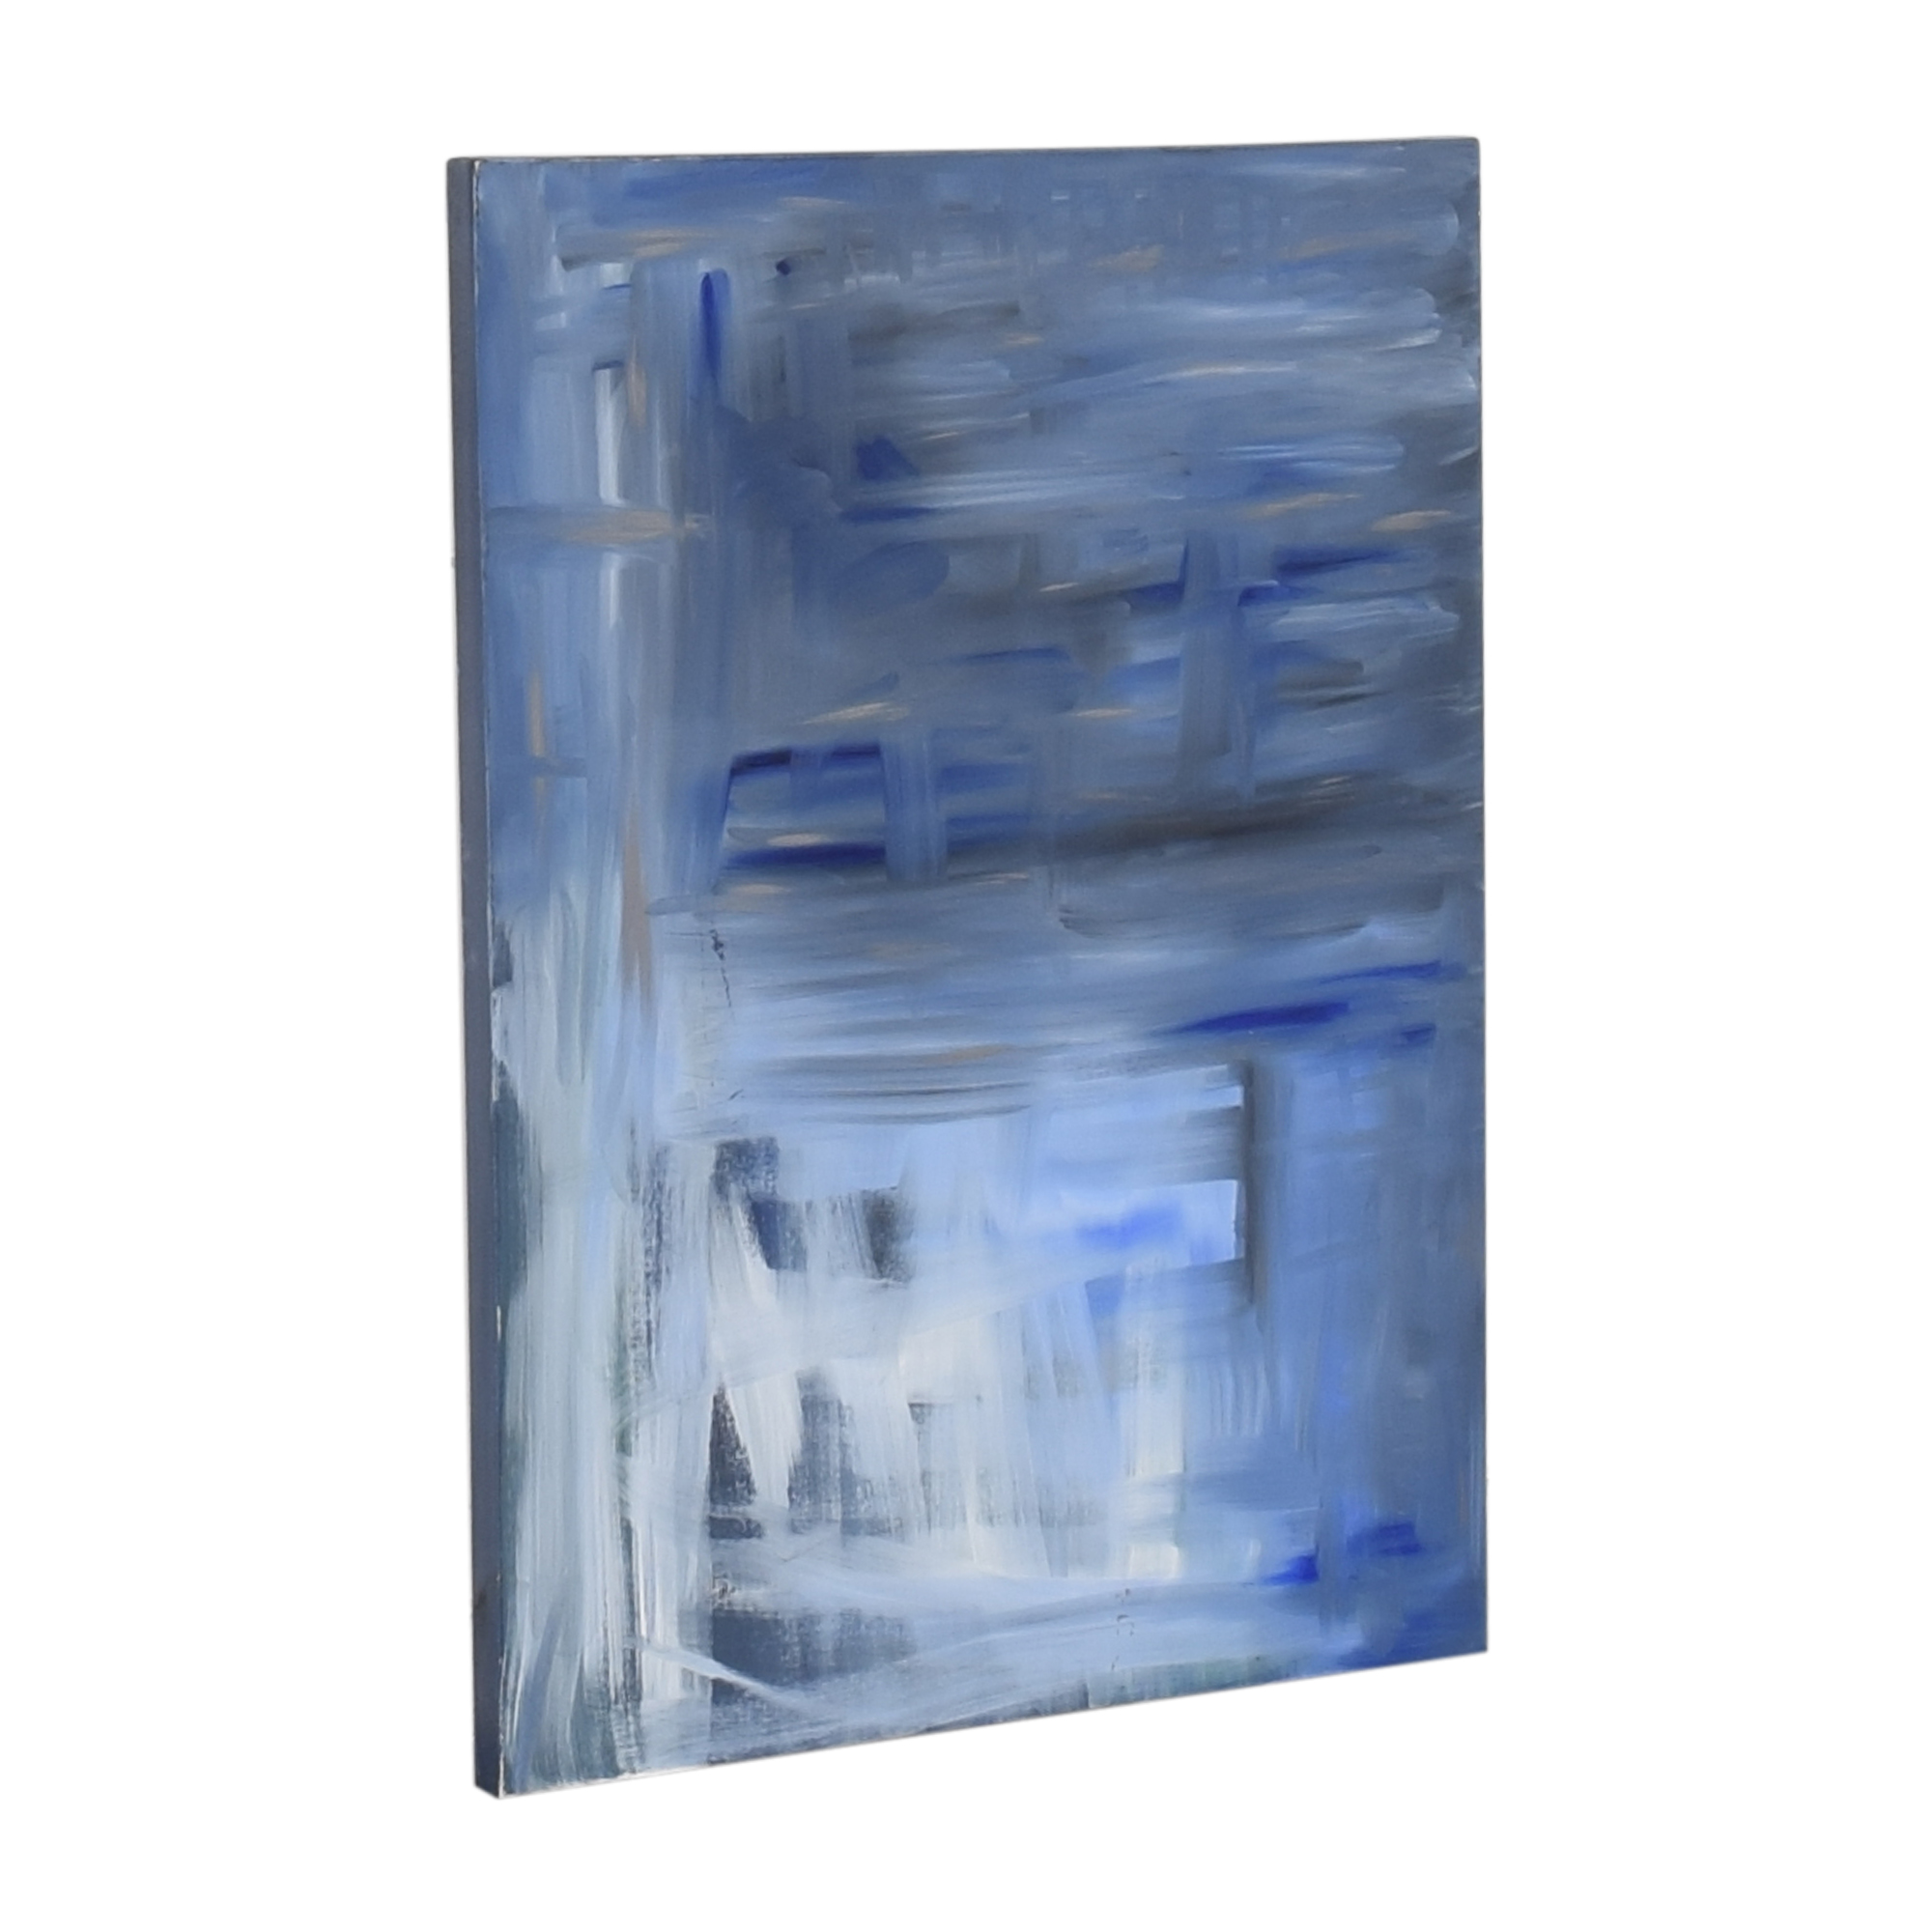 buy Accent Trend Accent Trend Abstract Wall Art online